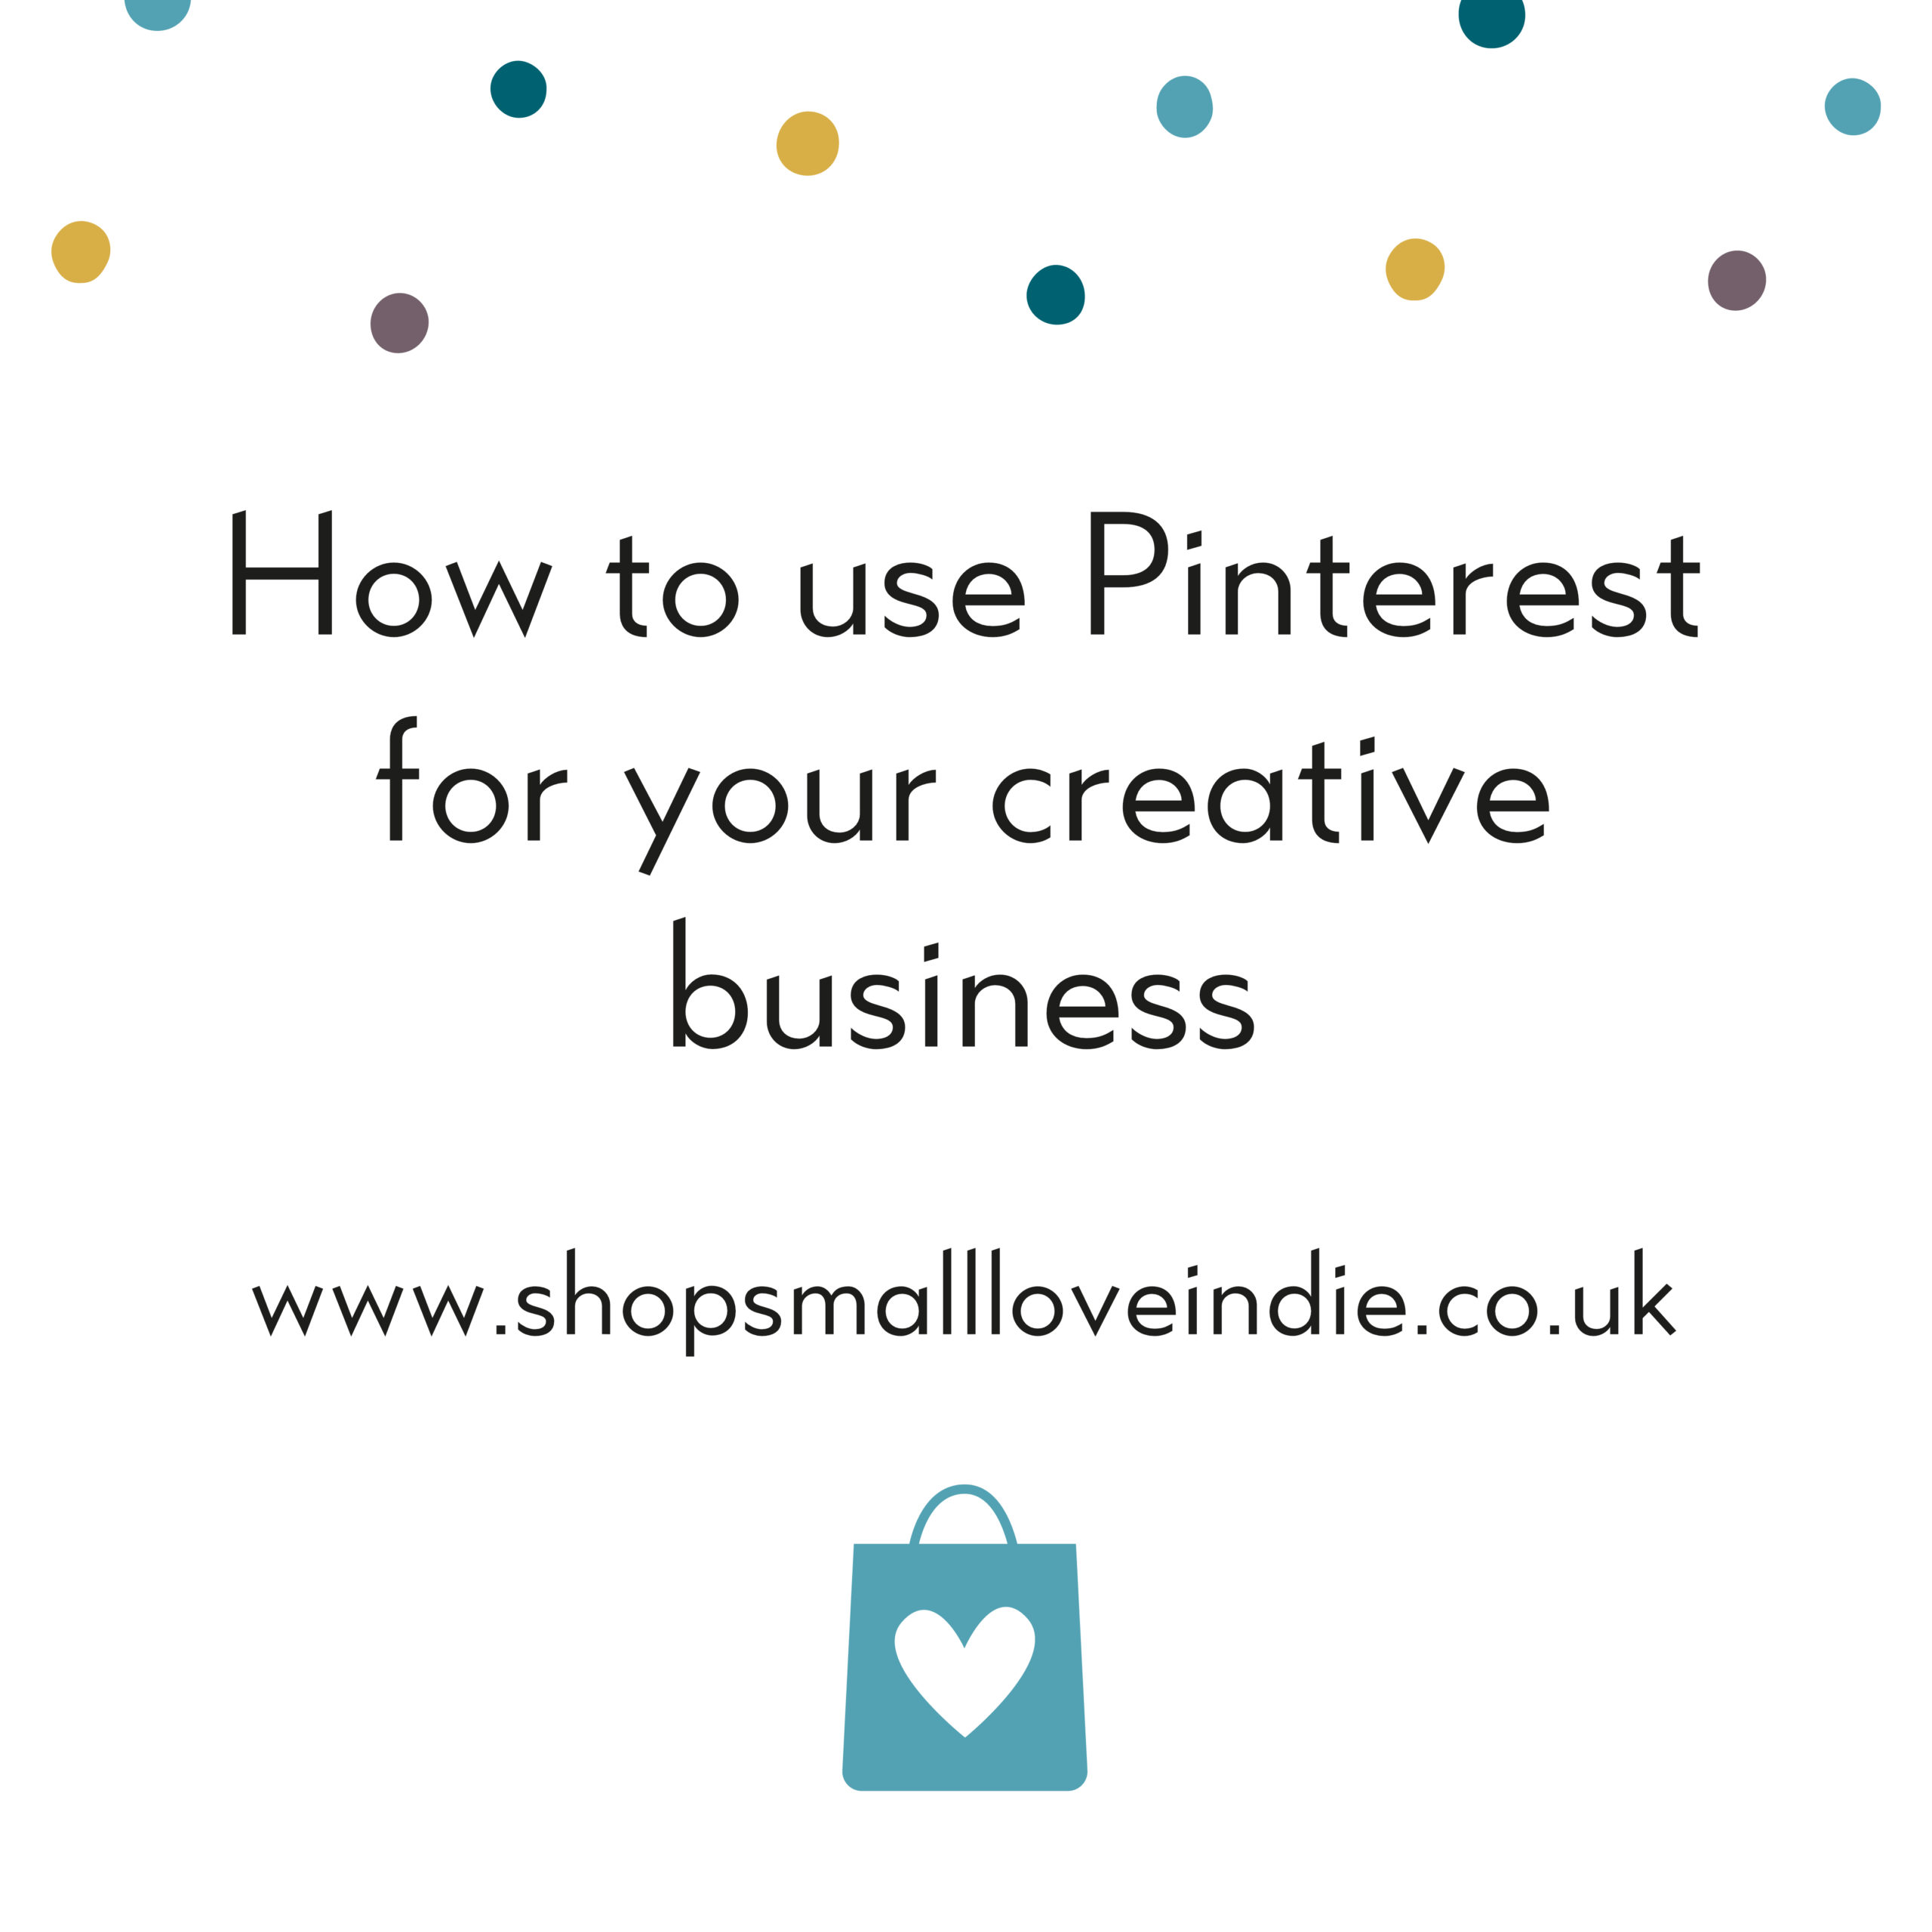 How to use Pinterest for your creative business